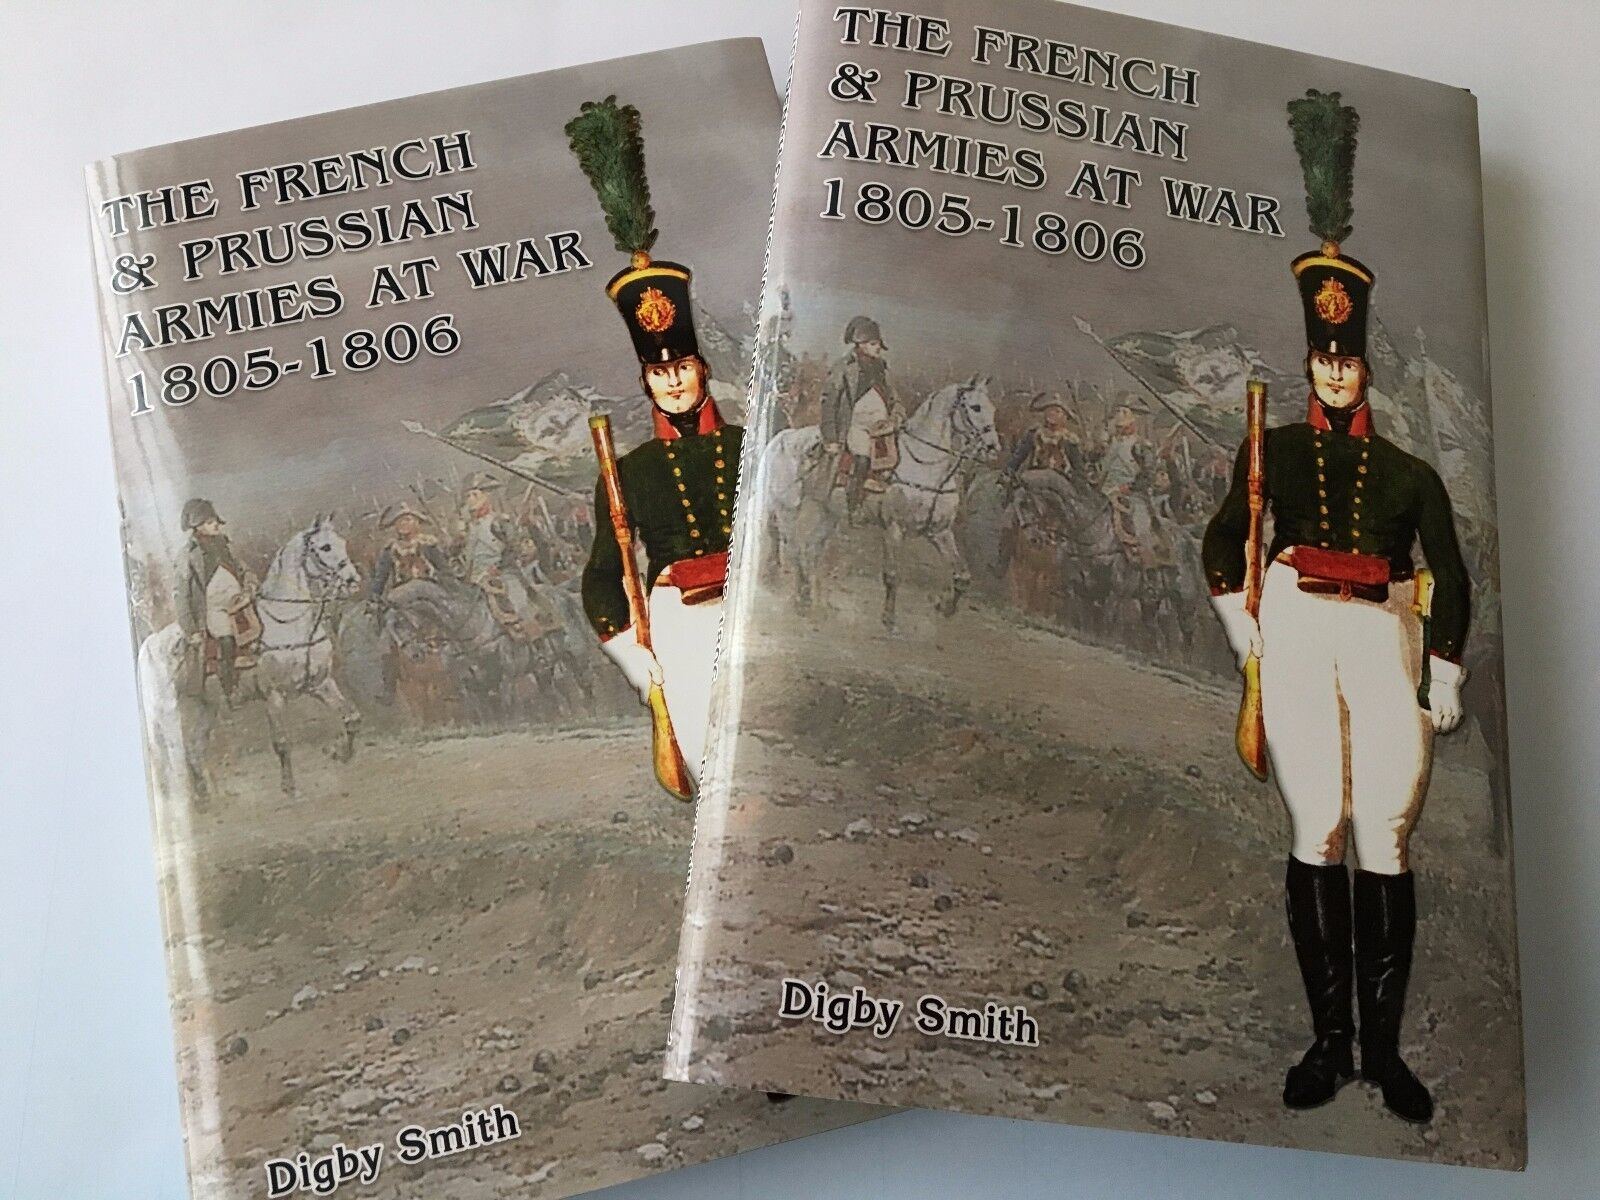 THE FRENCH & PRUSSIAN ARMIES AT WART 1805-1806 - PARTIZAN PRESS -